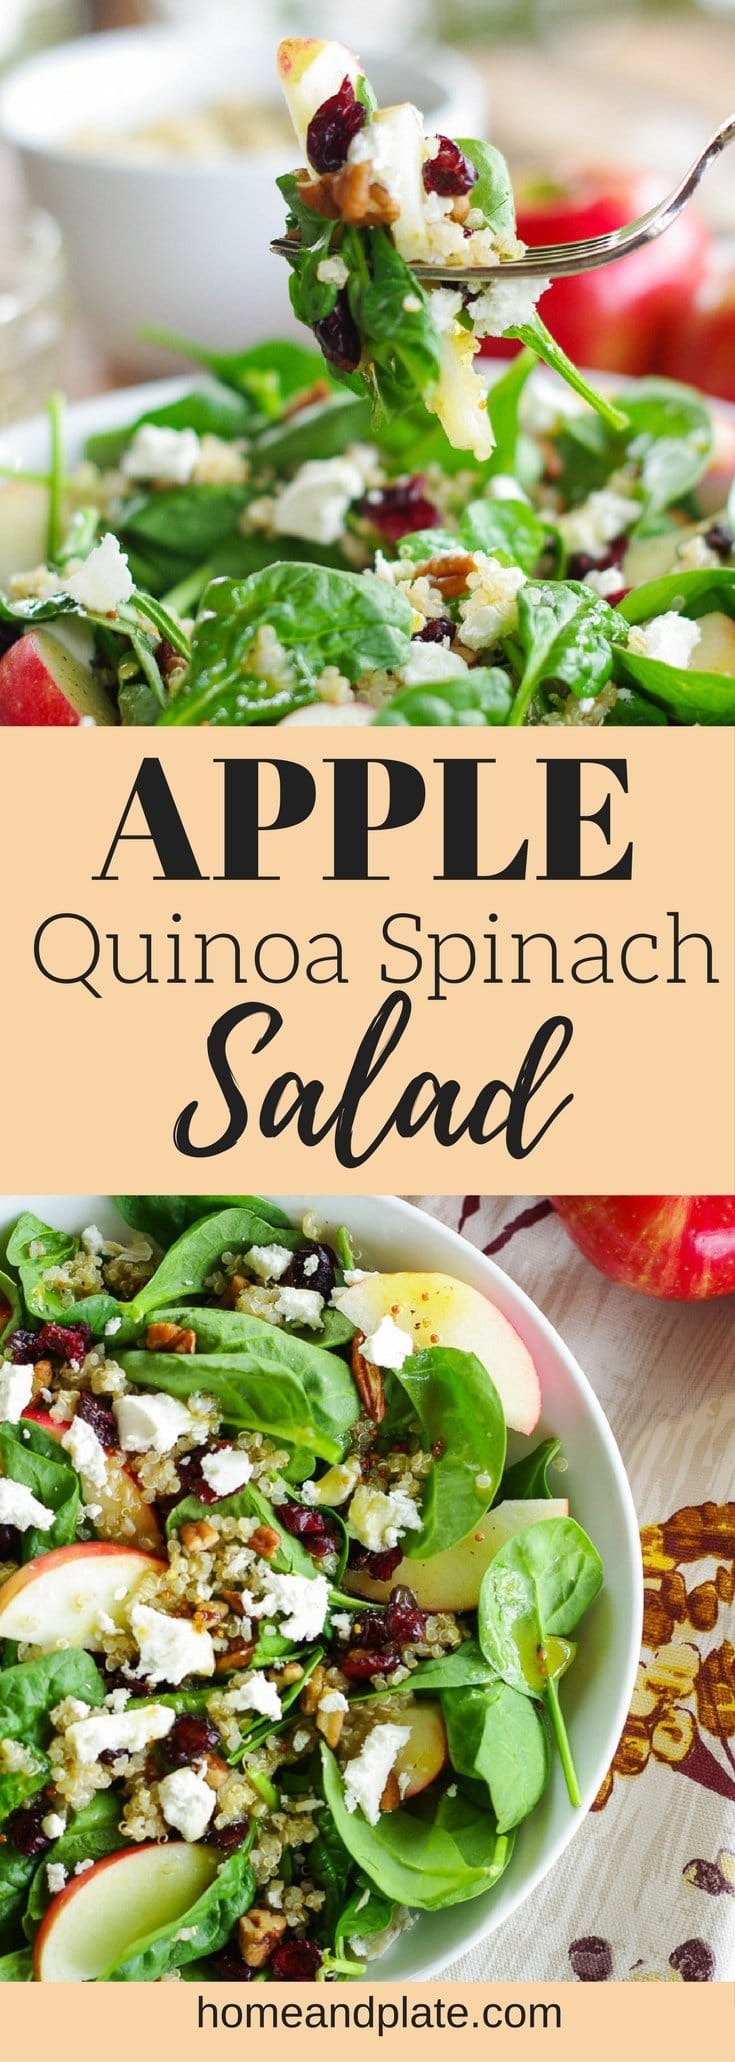 Apple Quinoa Spinach Salad | Turn an ordinary salad into a power spinach salad by adding protein-packed quinoa and fiber rich apples and pecans. | www.homeandplate.com | #powersalad